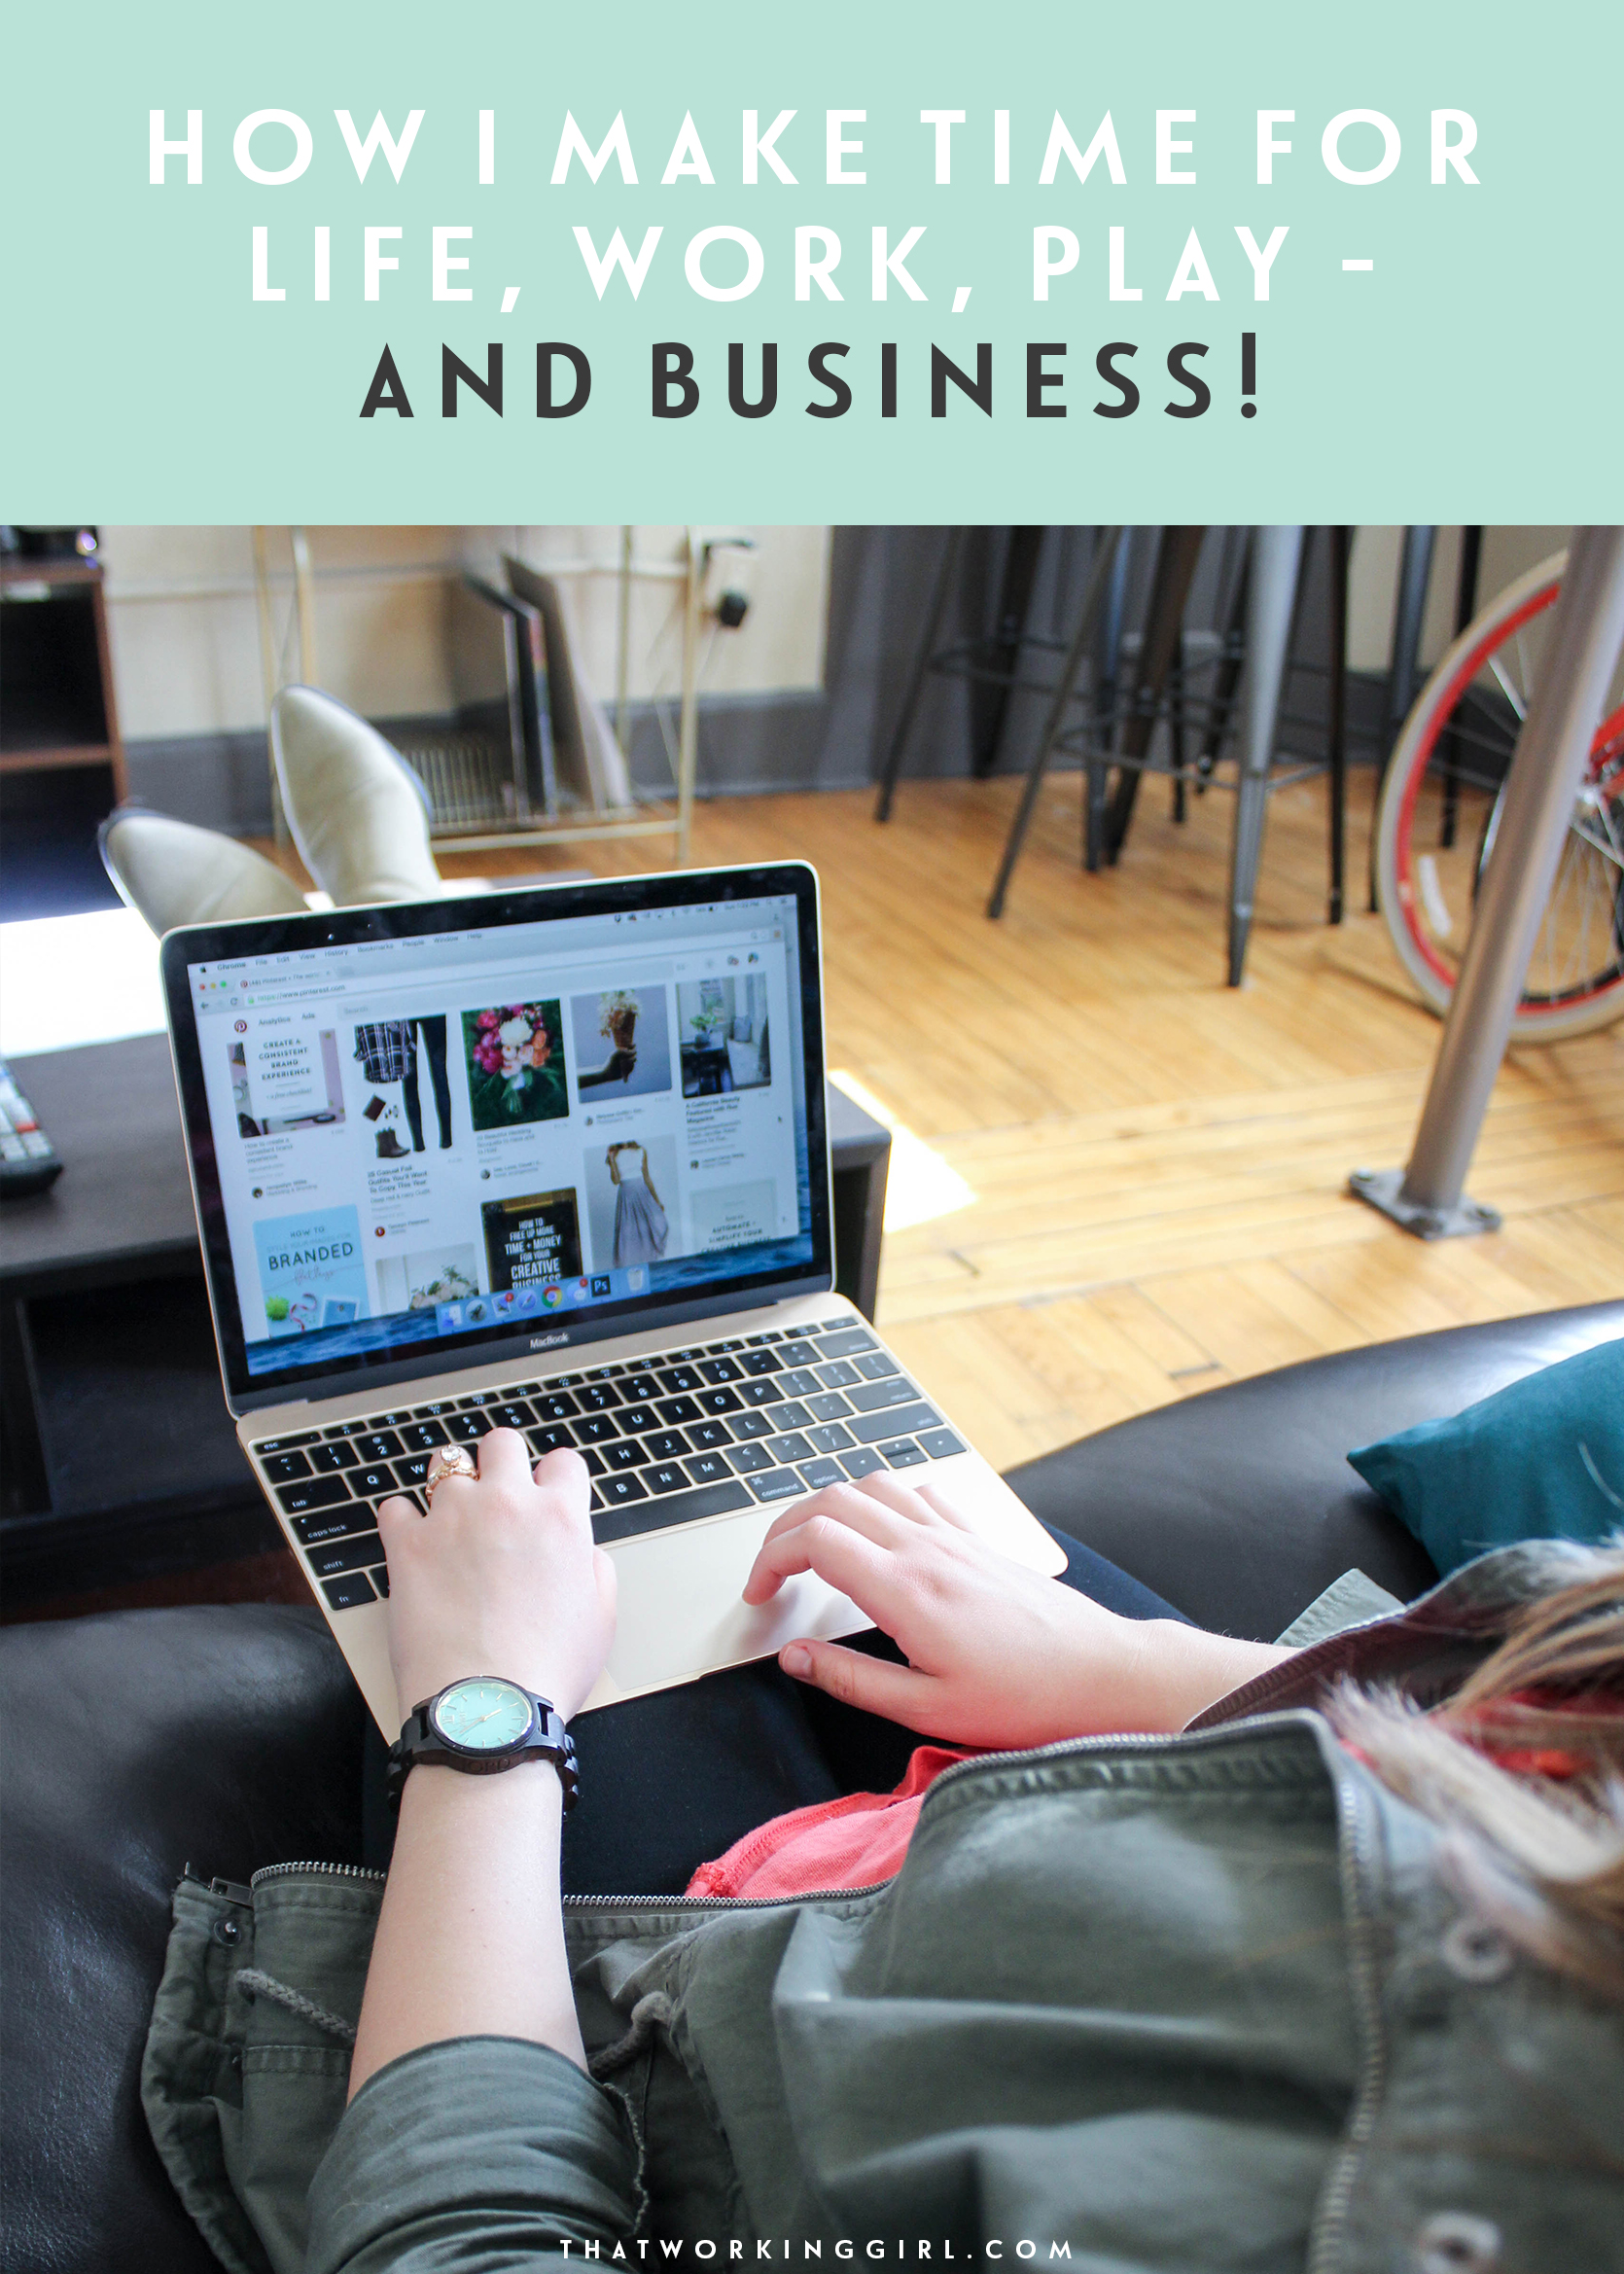 How I Make Time for Life, Work, Play - and Business!